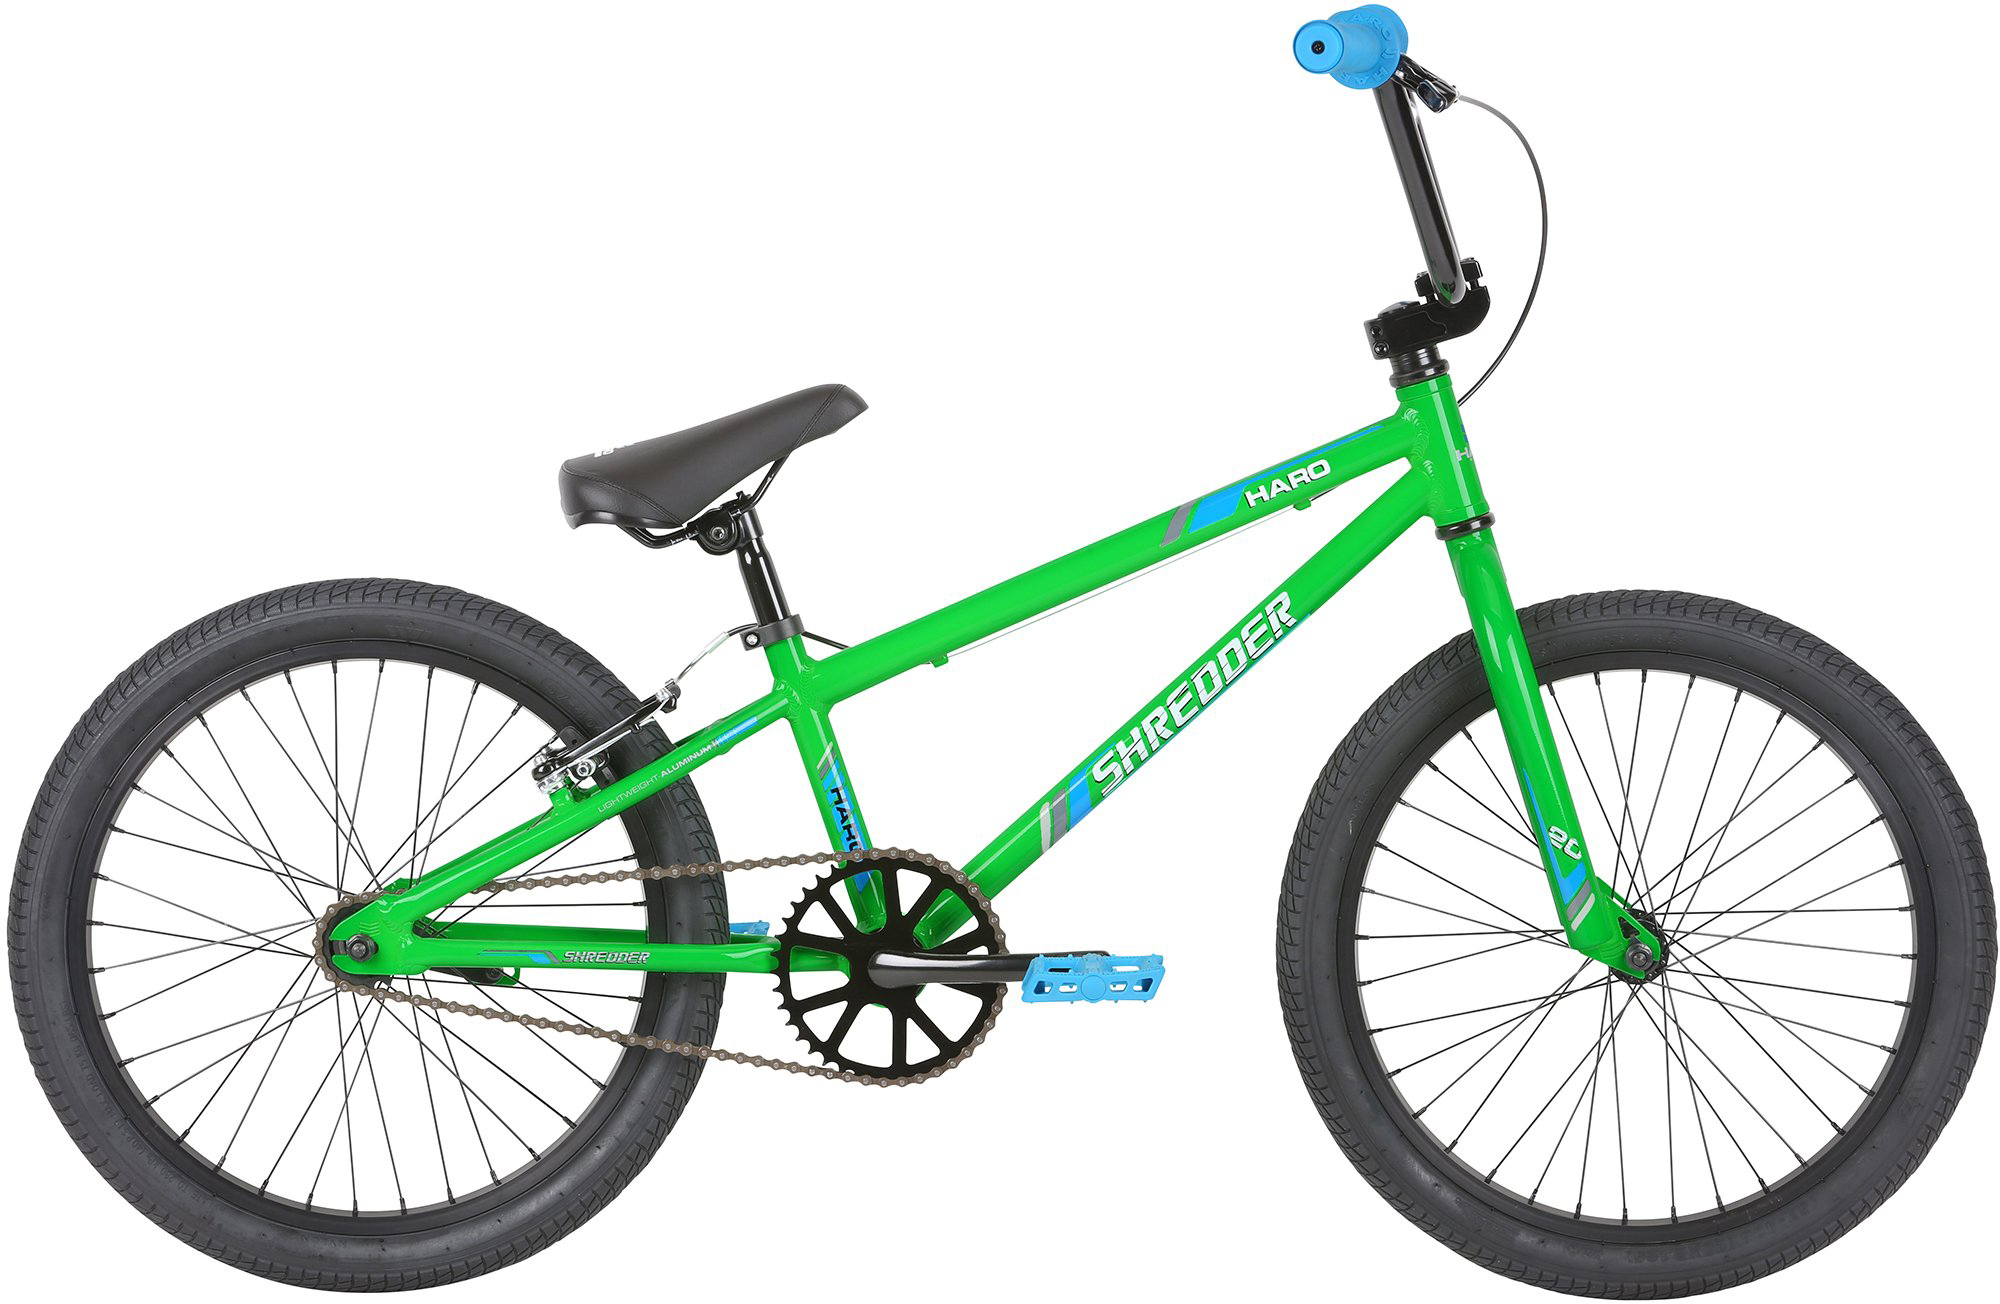 Haro Shredder BMX Bike | BMX-cykler